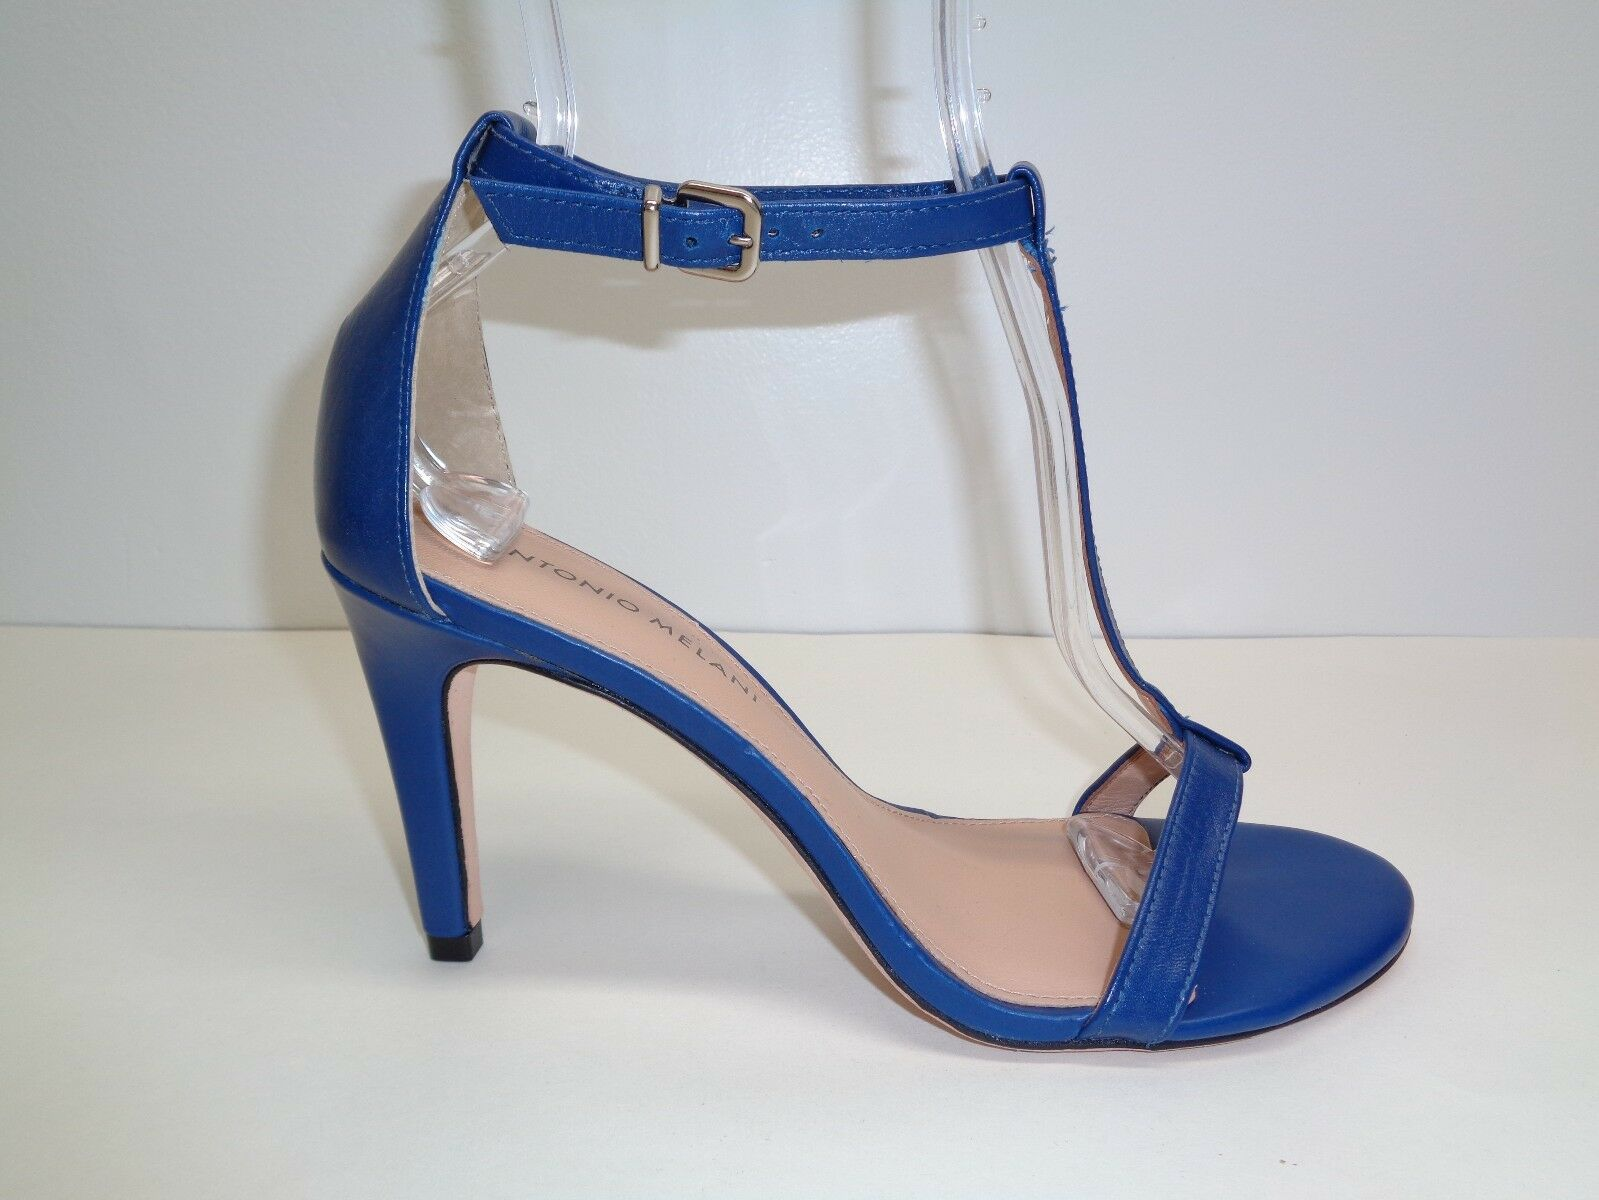 Antonio Melani Size 8 M AUDREY Blue Pelle T-Strap Sandals New Donna Shoes